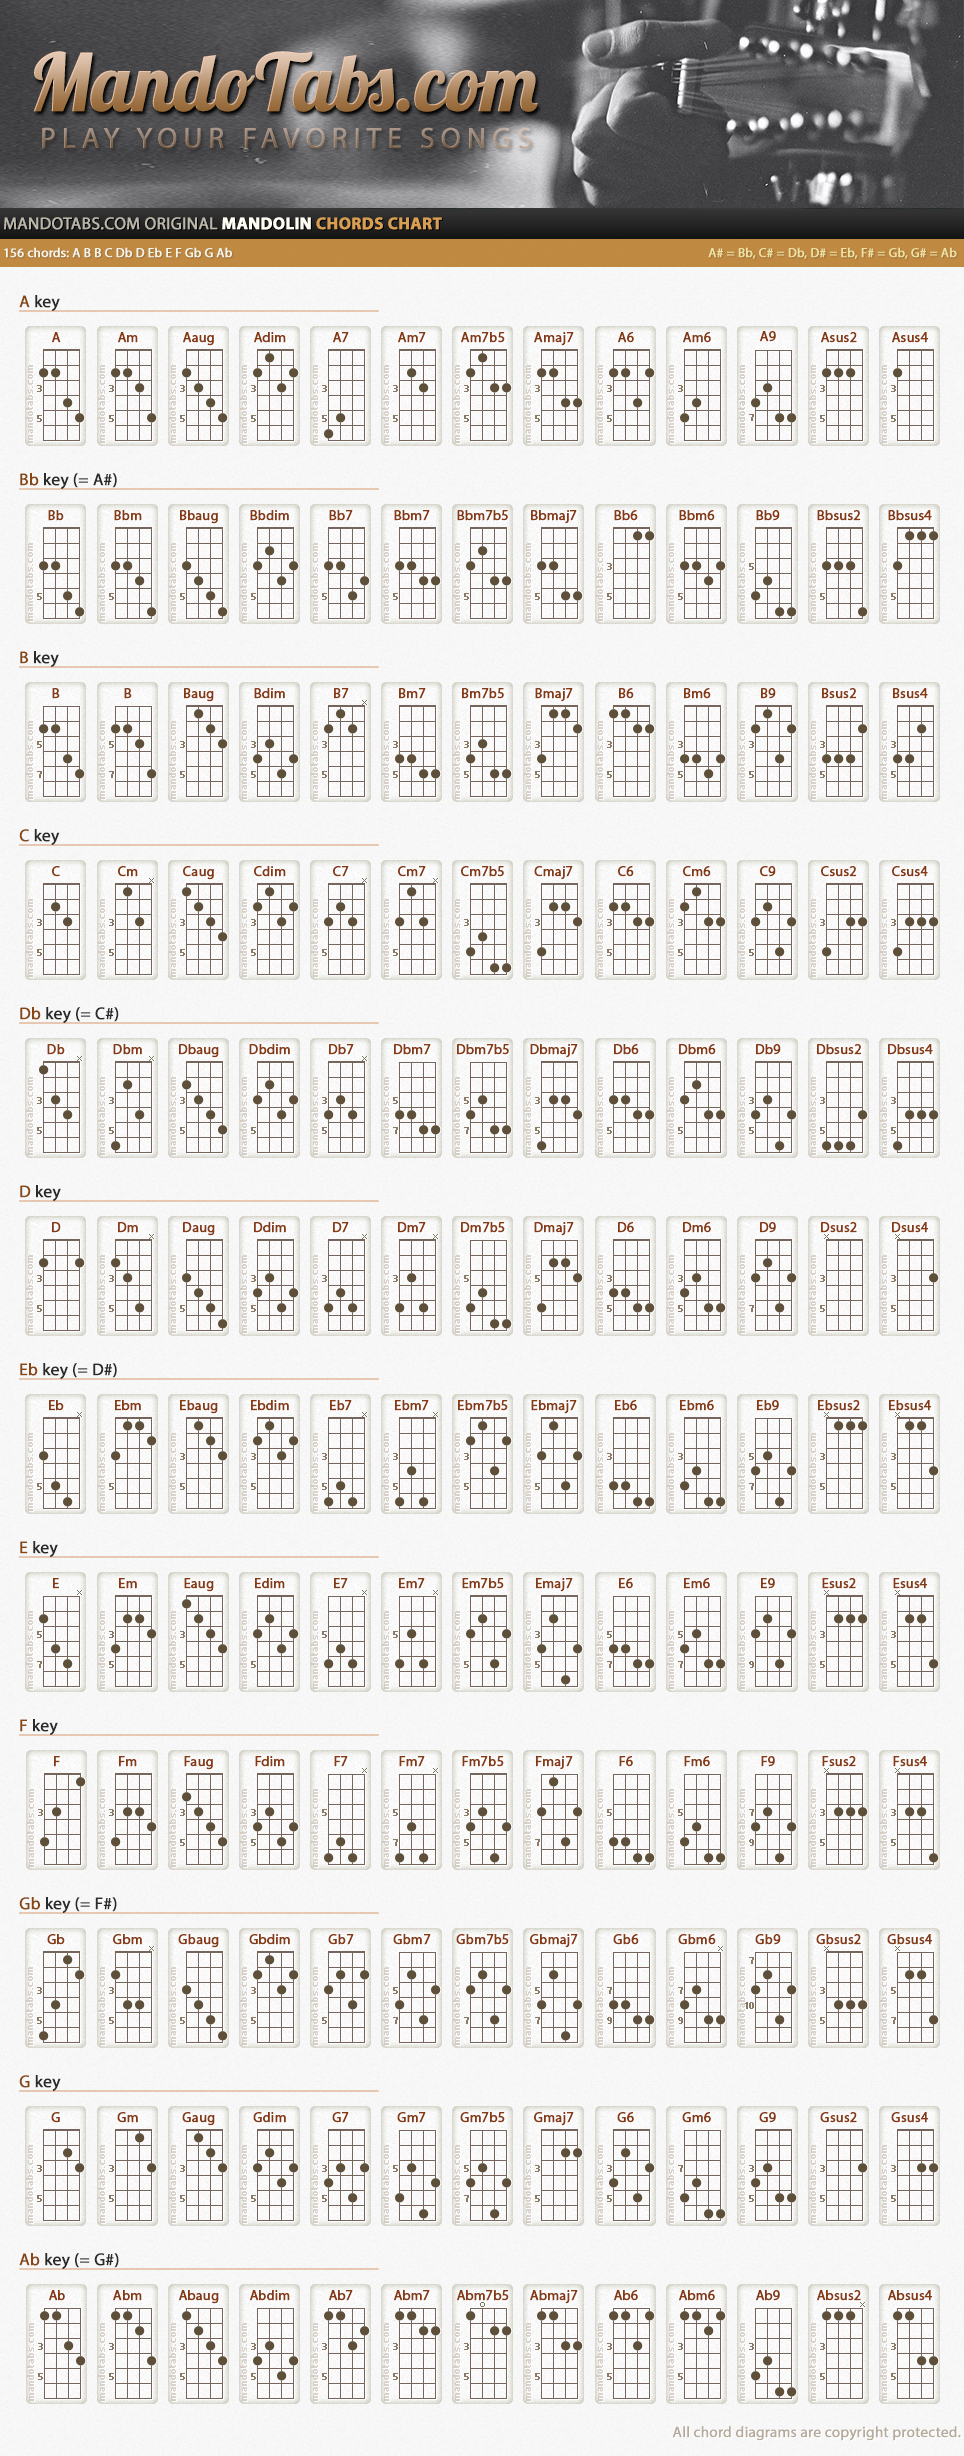 Complete Guitar Chords Chart Inspirational Pin by Janelle Honeycutt On Tips Tricks Things to